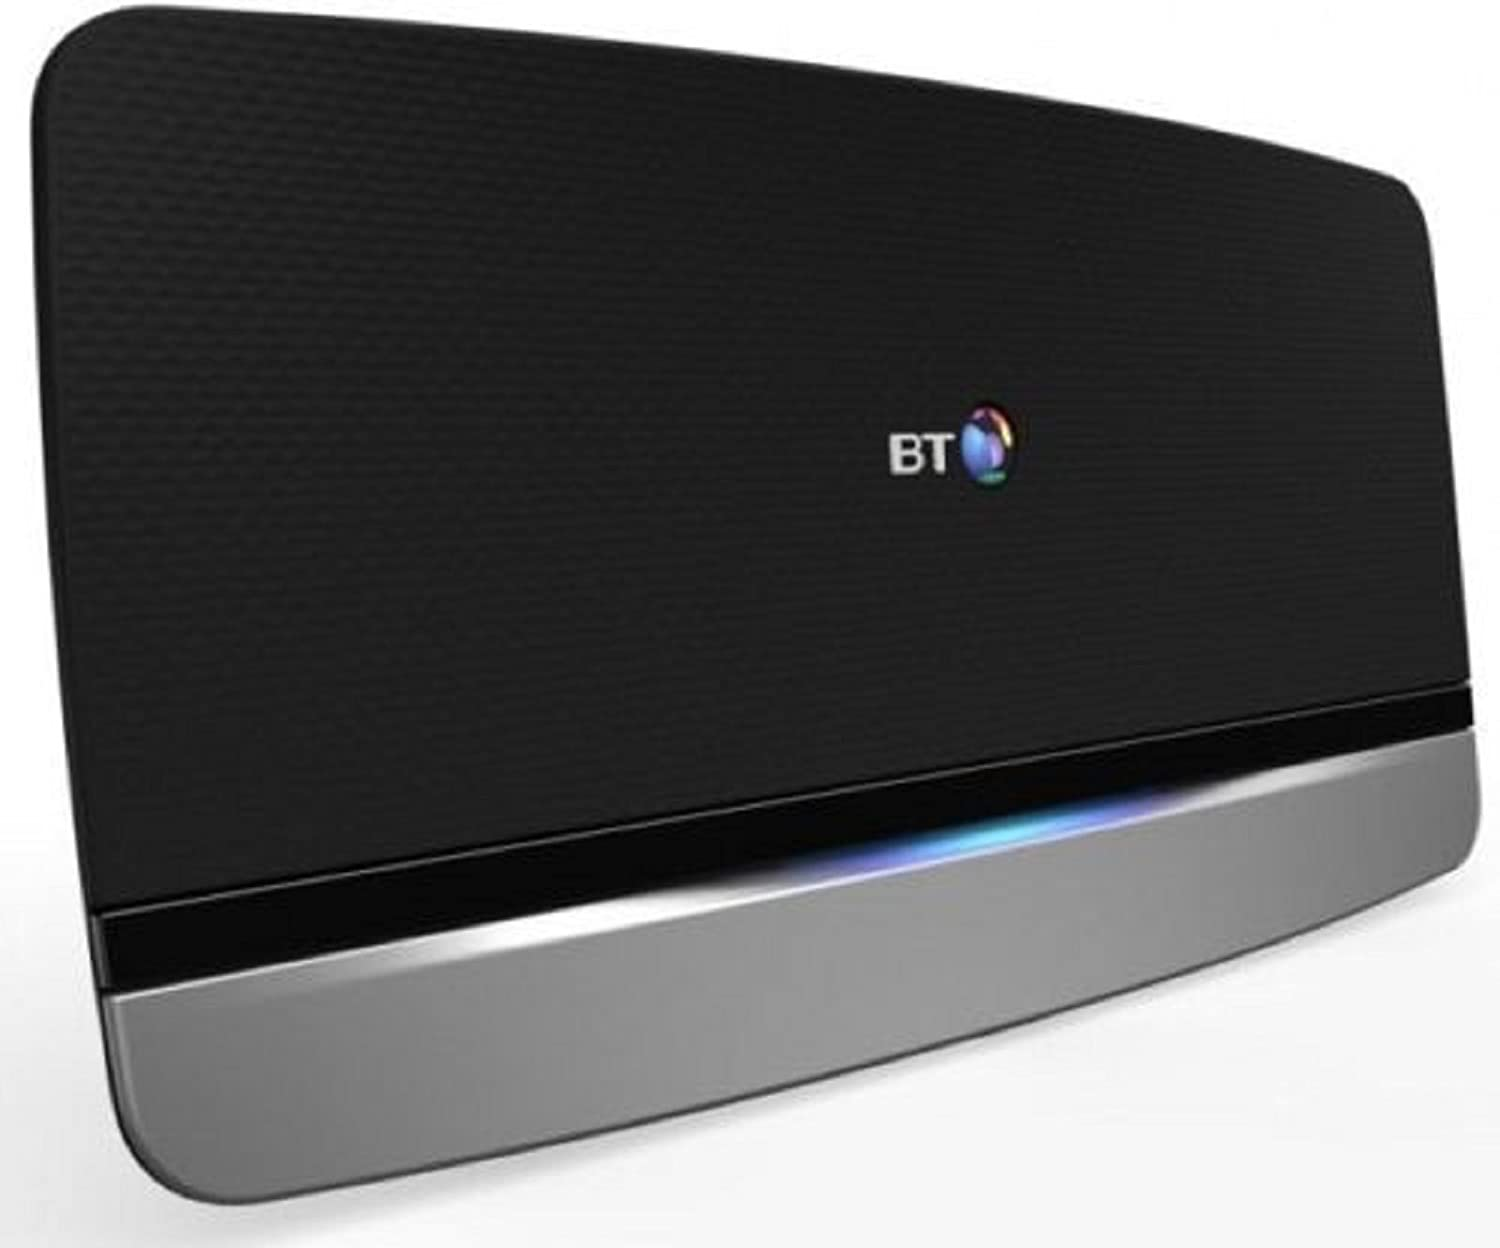 Bt Home Hub 4 Computers Accessories House Wiring Diagram